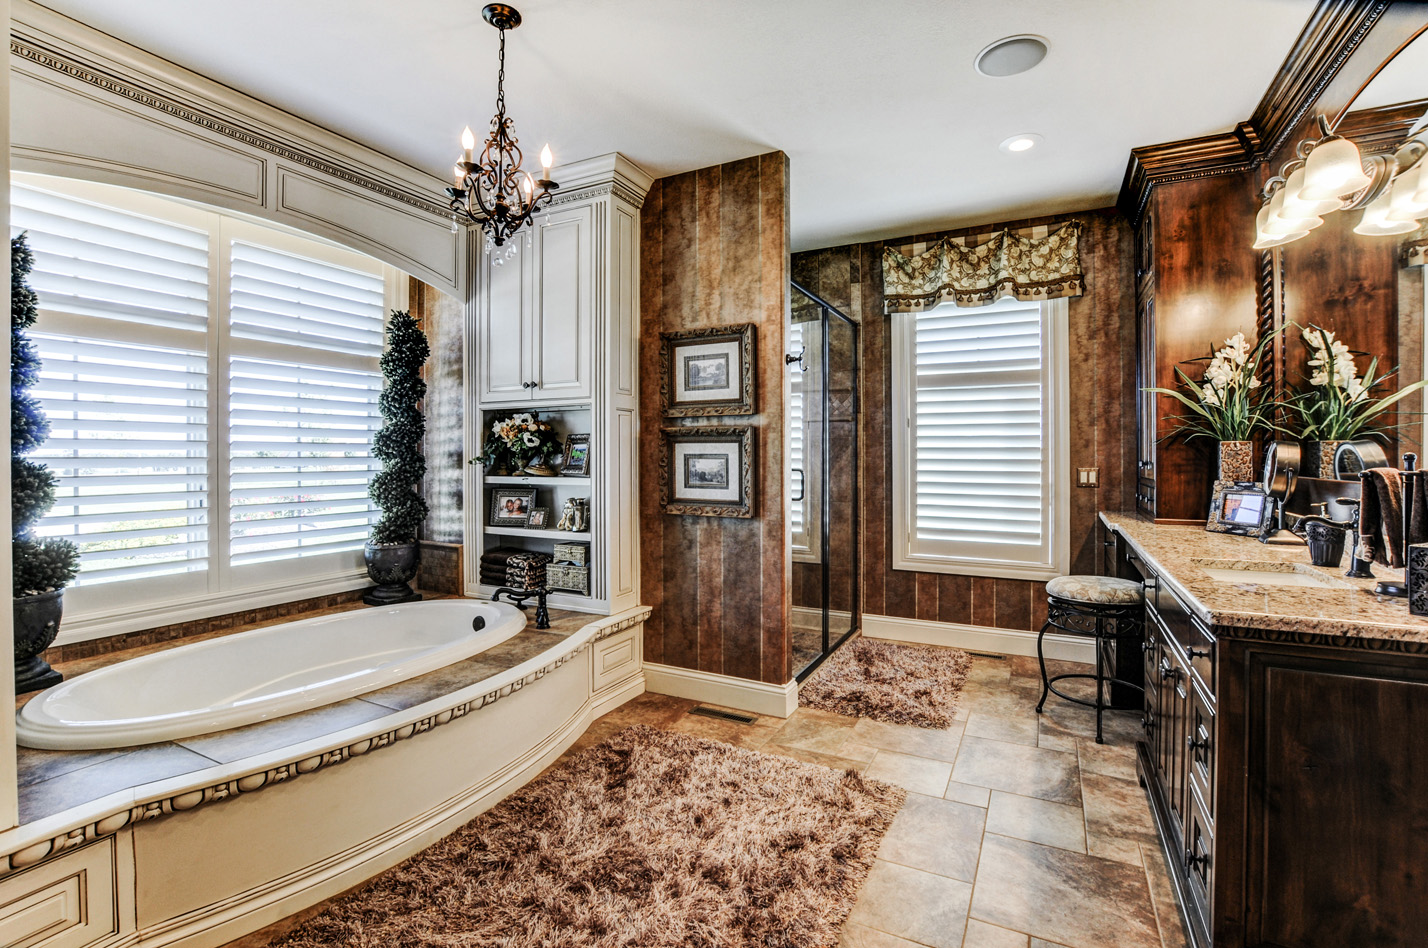 built-by-brett-custom-home-springfield-mo-13735-lawrence-2100-028.jpg